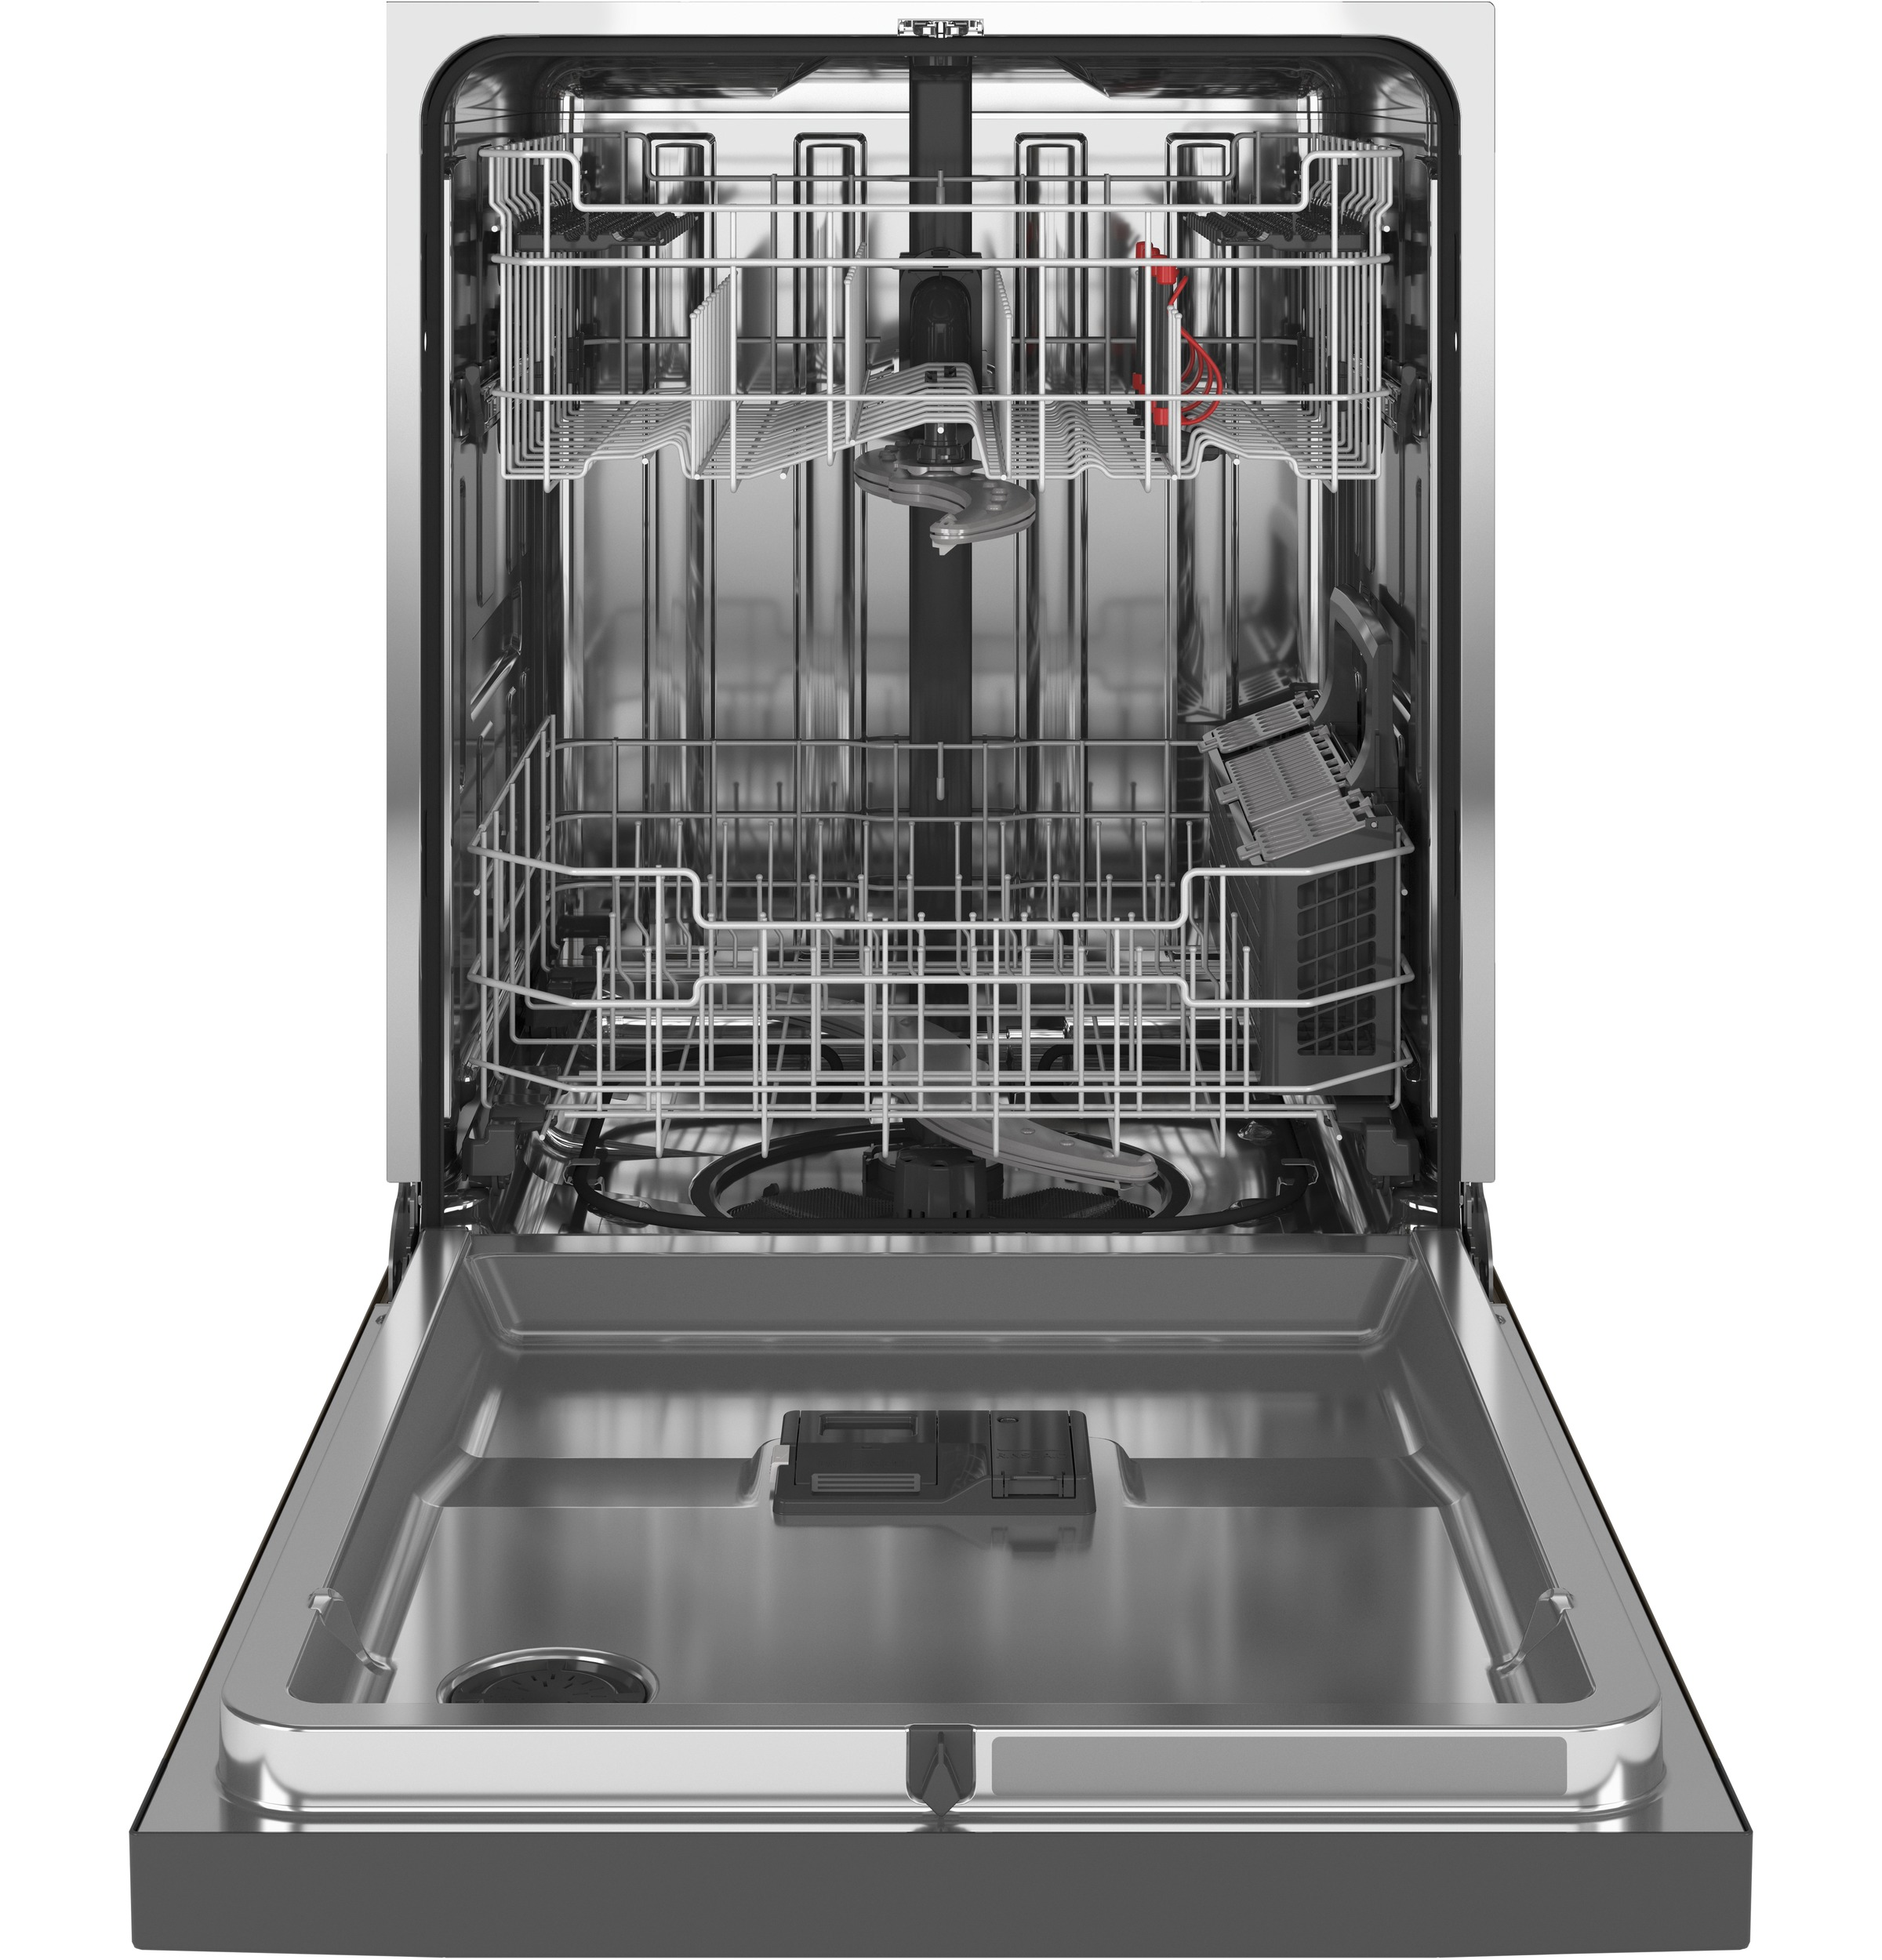 Model: GDF645SMNES | GE GE® Front Control with Stainless Steel Interior Dishwasher with Sanitize Cycle & Dry Boost